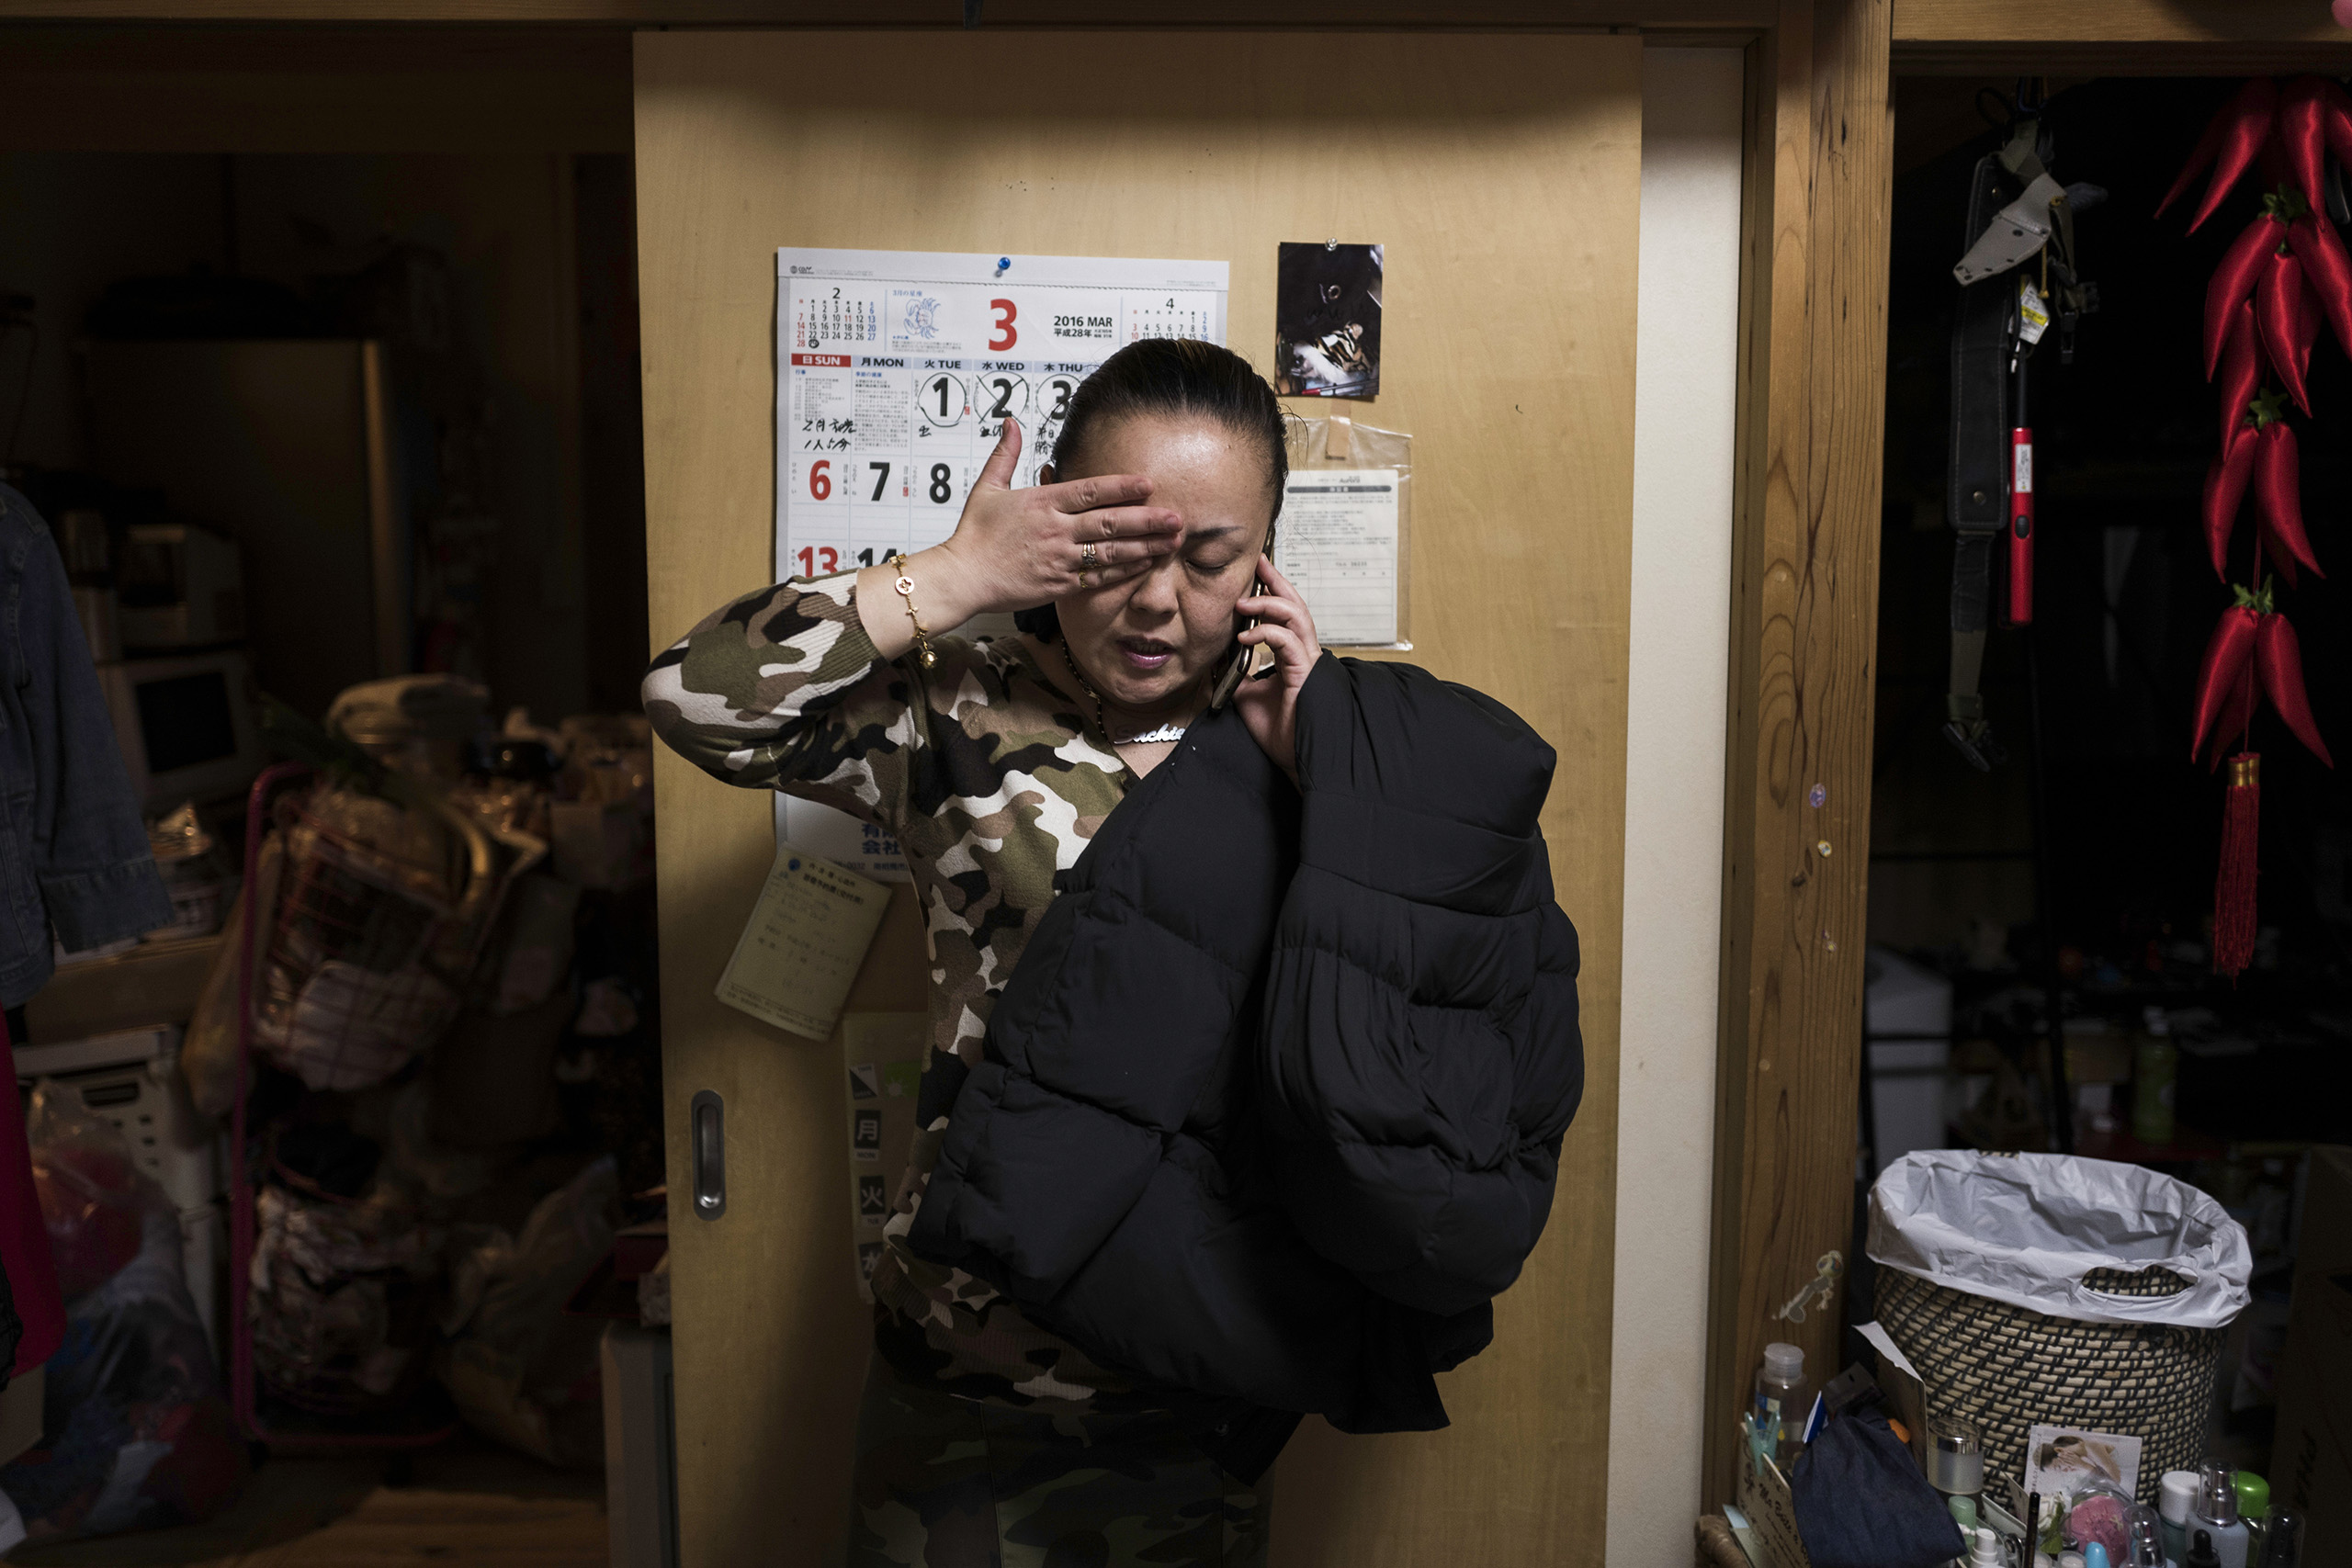 Sachie Matsumoto talks on the phone inside her temporary house in Minamisoma, Fukushima, March 3, 2016. Her son, a decontamination worker, tried to commit suicide. Her family will soon move to a new home built with savings and compensation money.